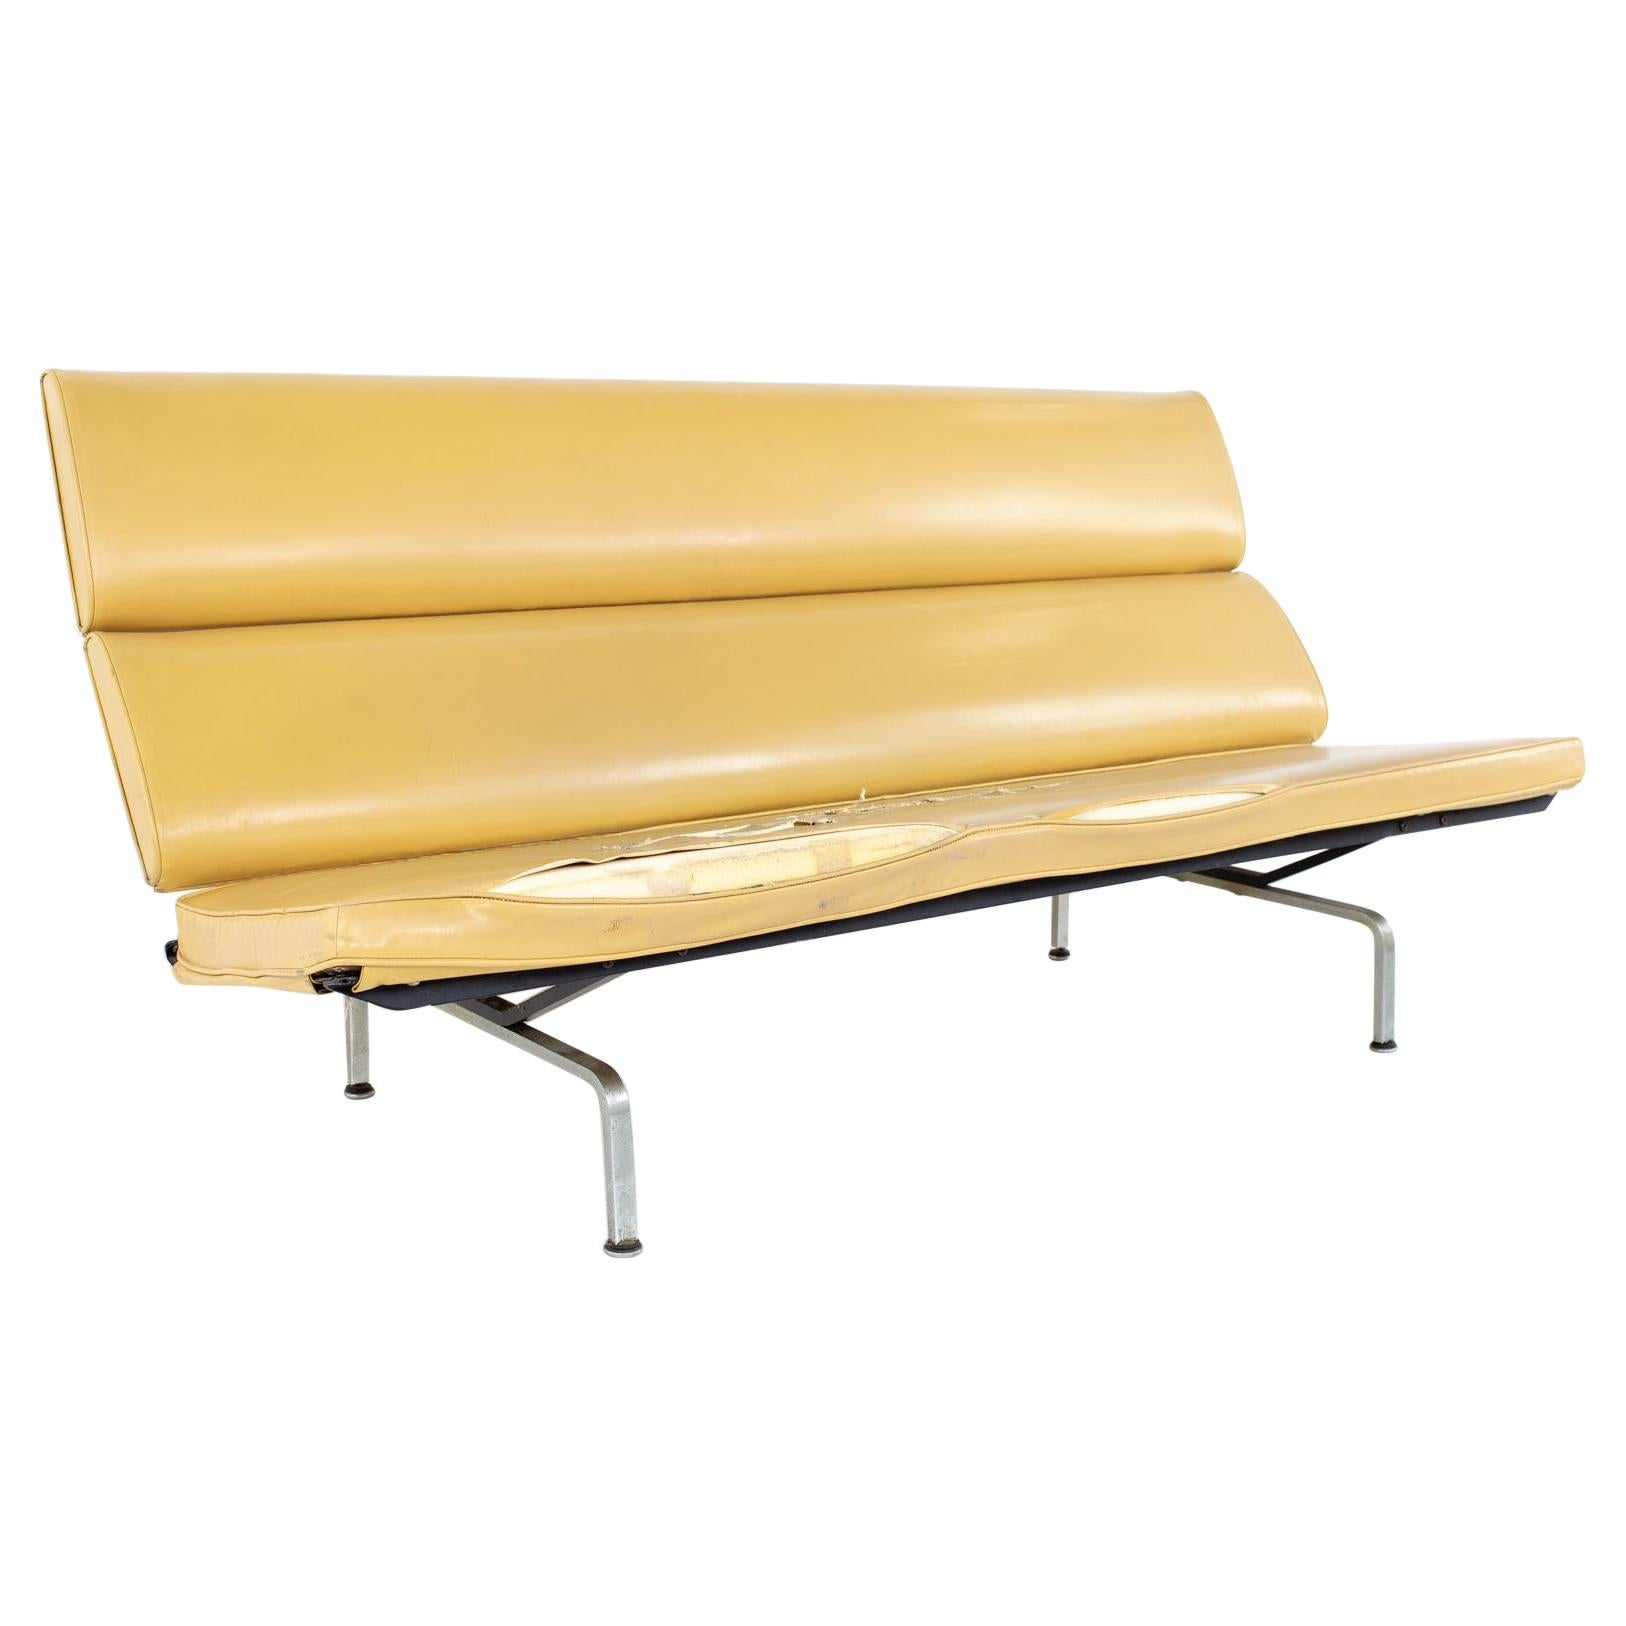 Early Charles and Ray Eames for Herman Miller Mid Century Compact Daybed Sofa